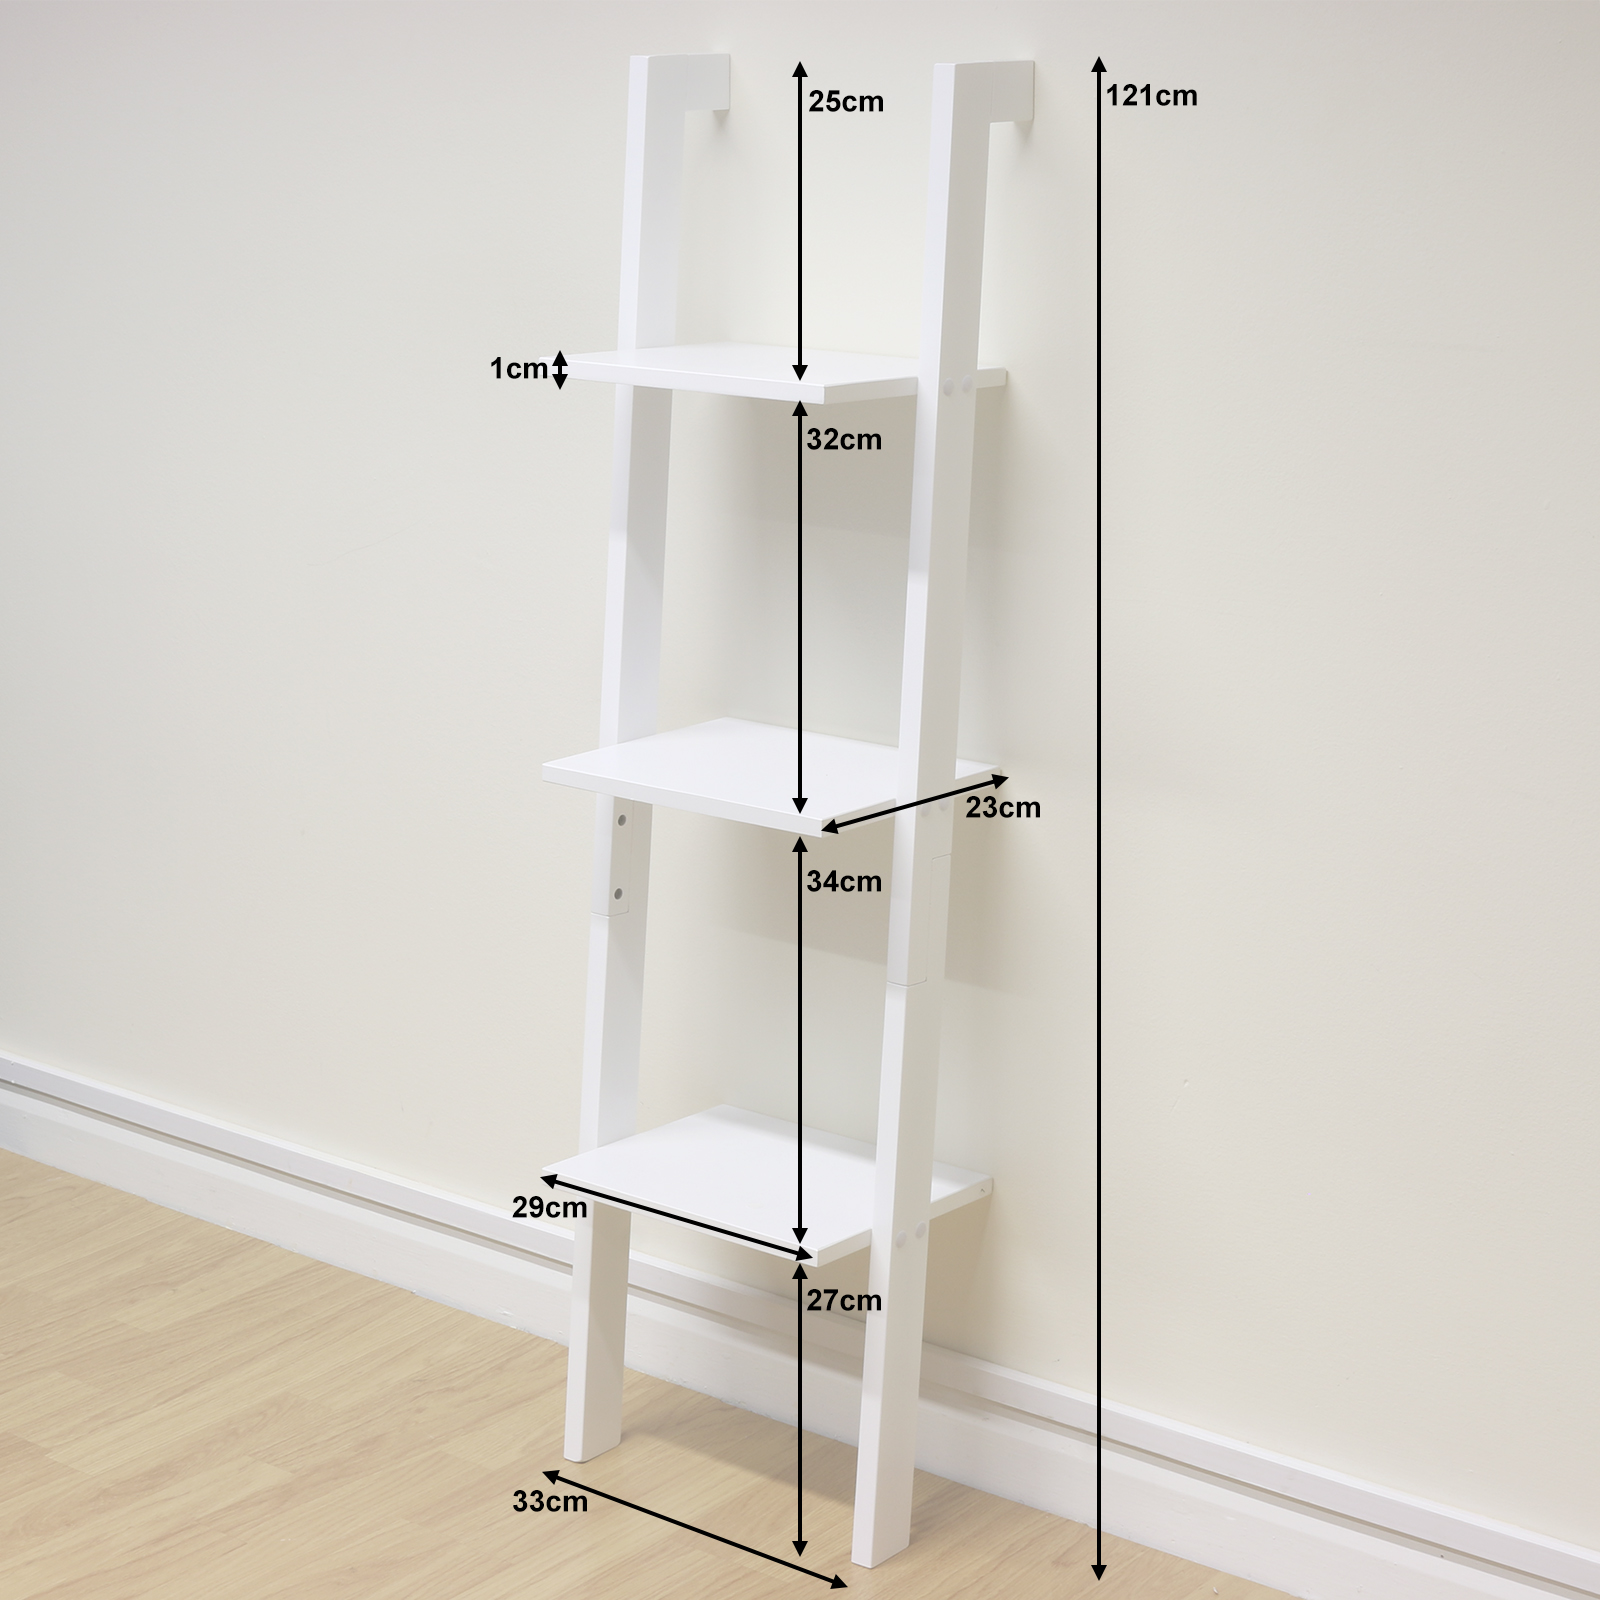 3 Tier White Ladder Wall Shelf Home Storage/Display Unit ...